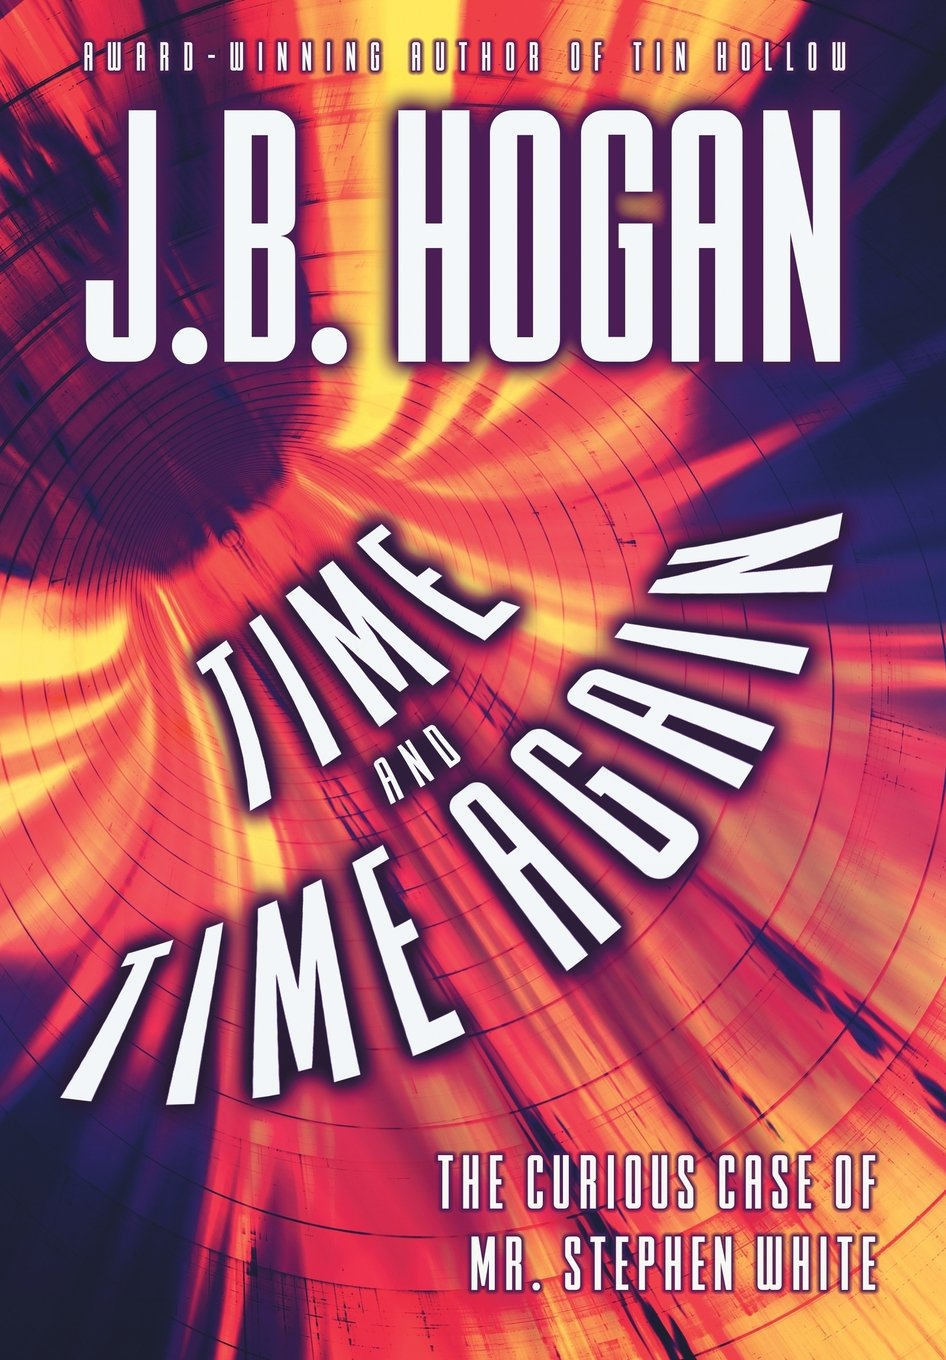 Amazon.com: Time and Time Again: The Curious Case of Mr ...